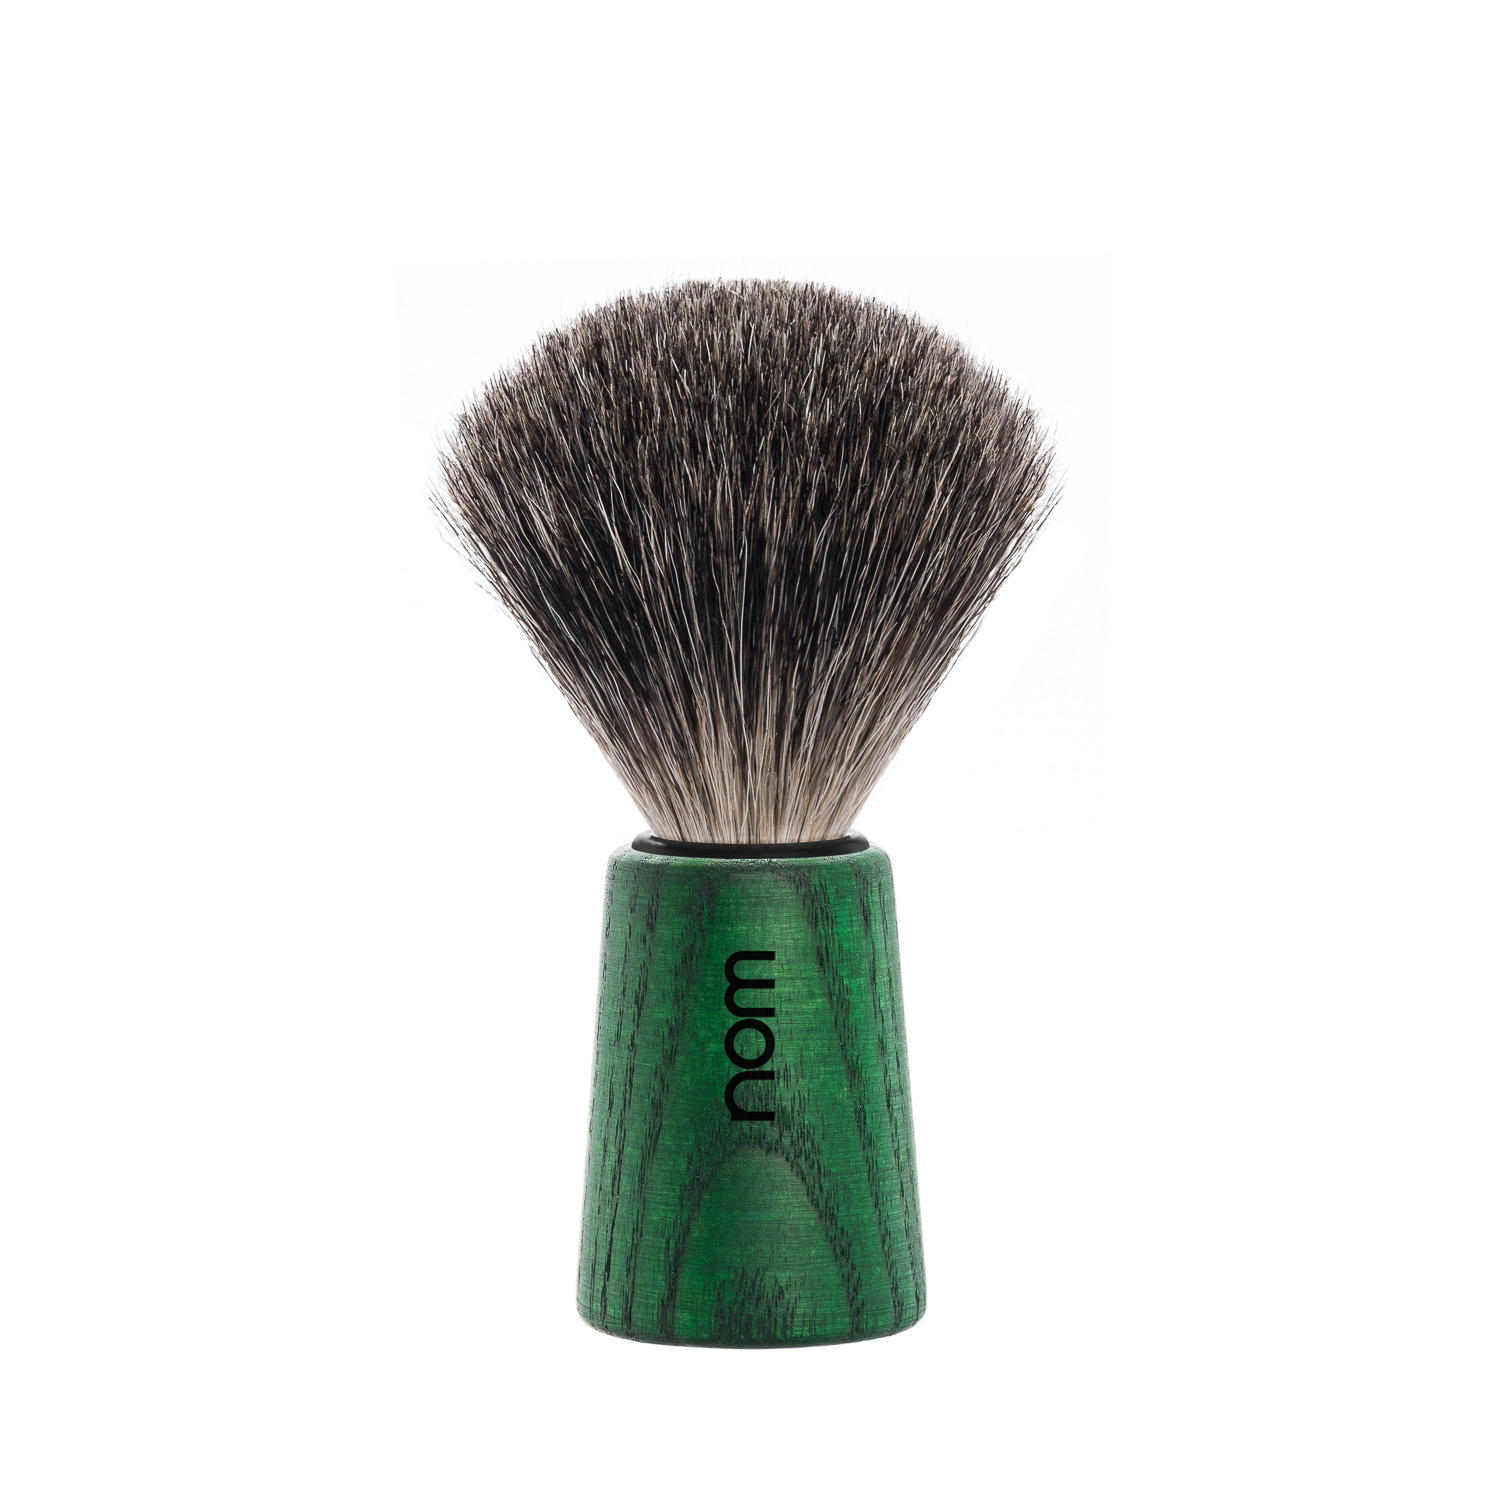 THEO81GA nom THEO, green ash, pure badger shaving brush